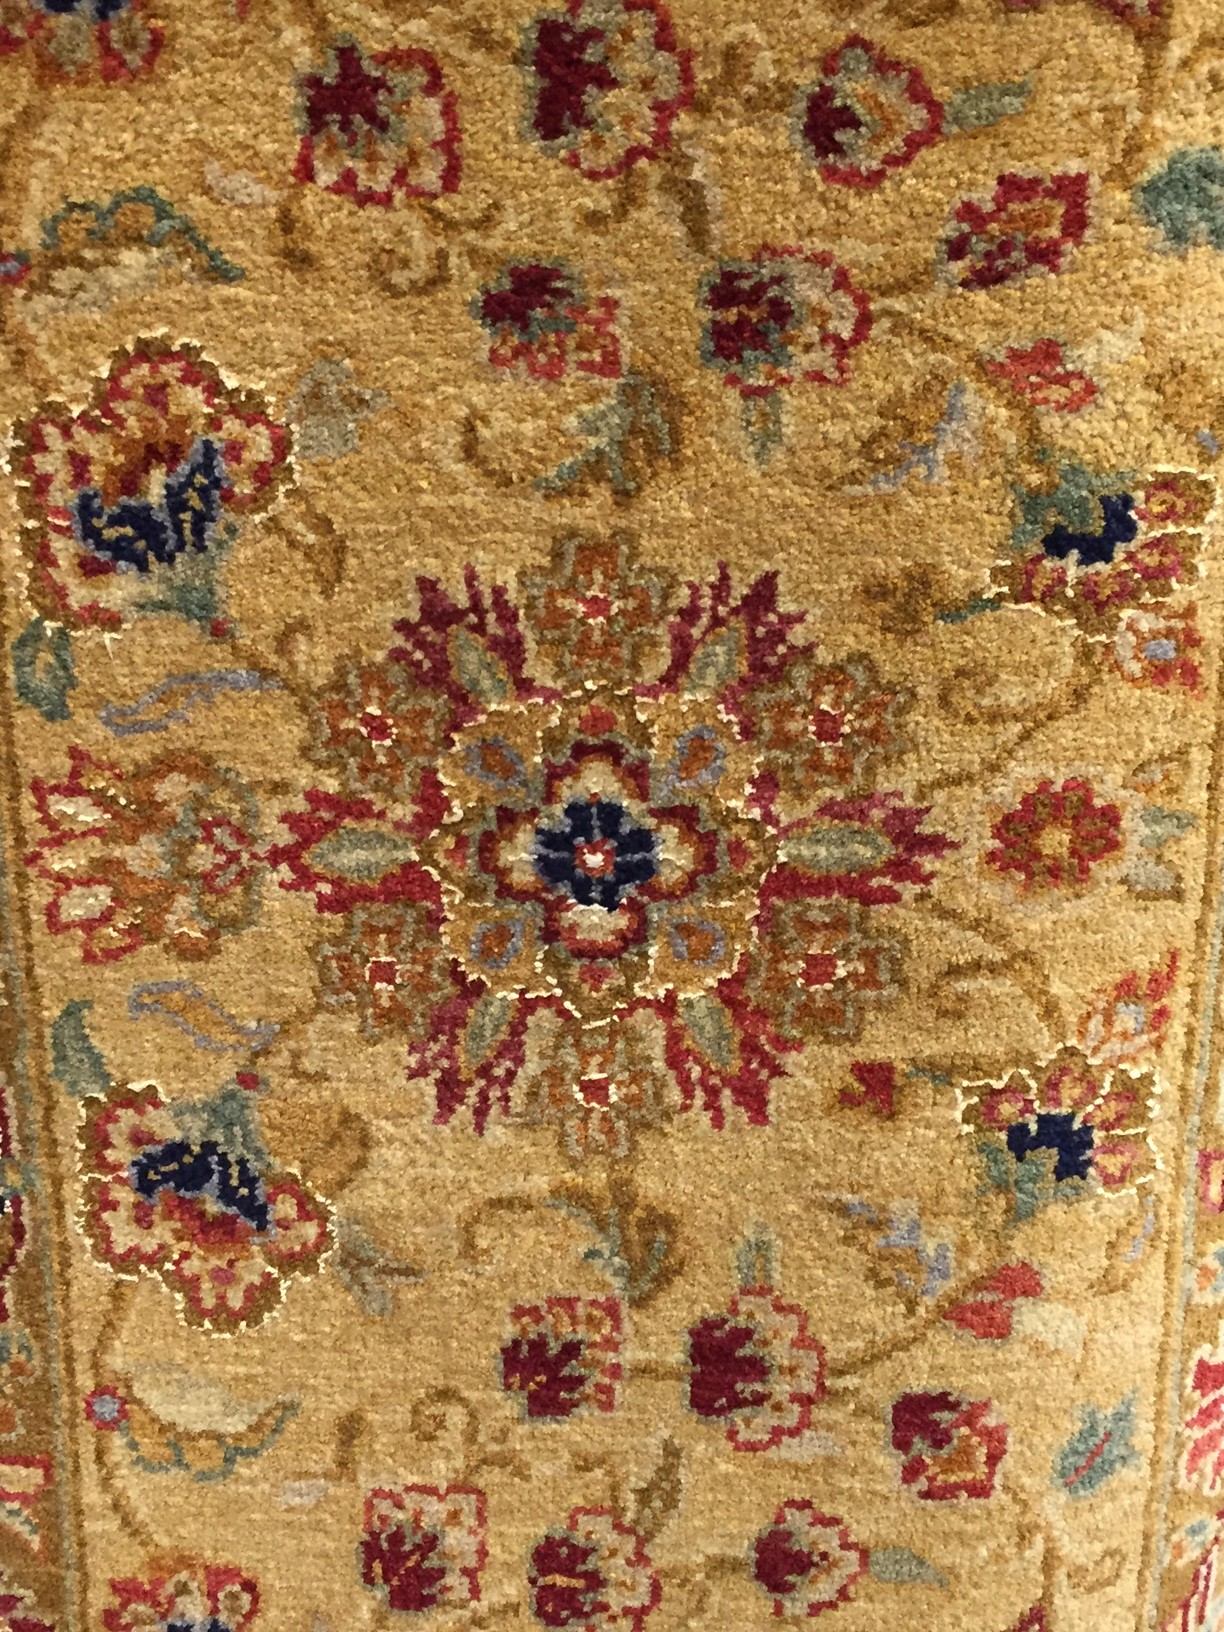 Mughal Agra Carpet Motif on boarder